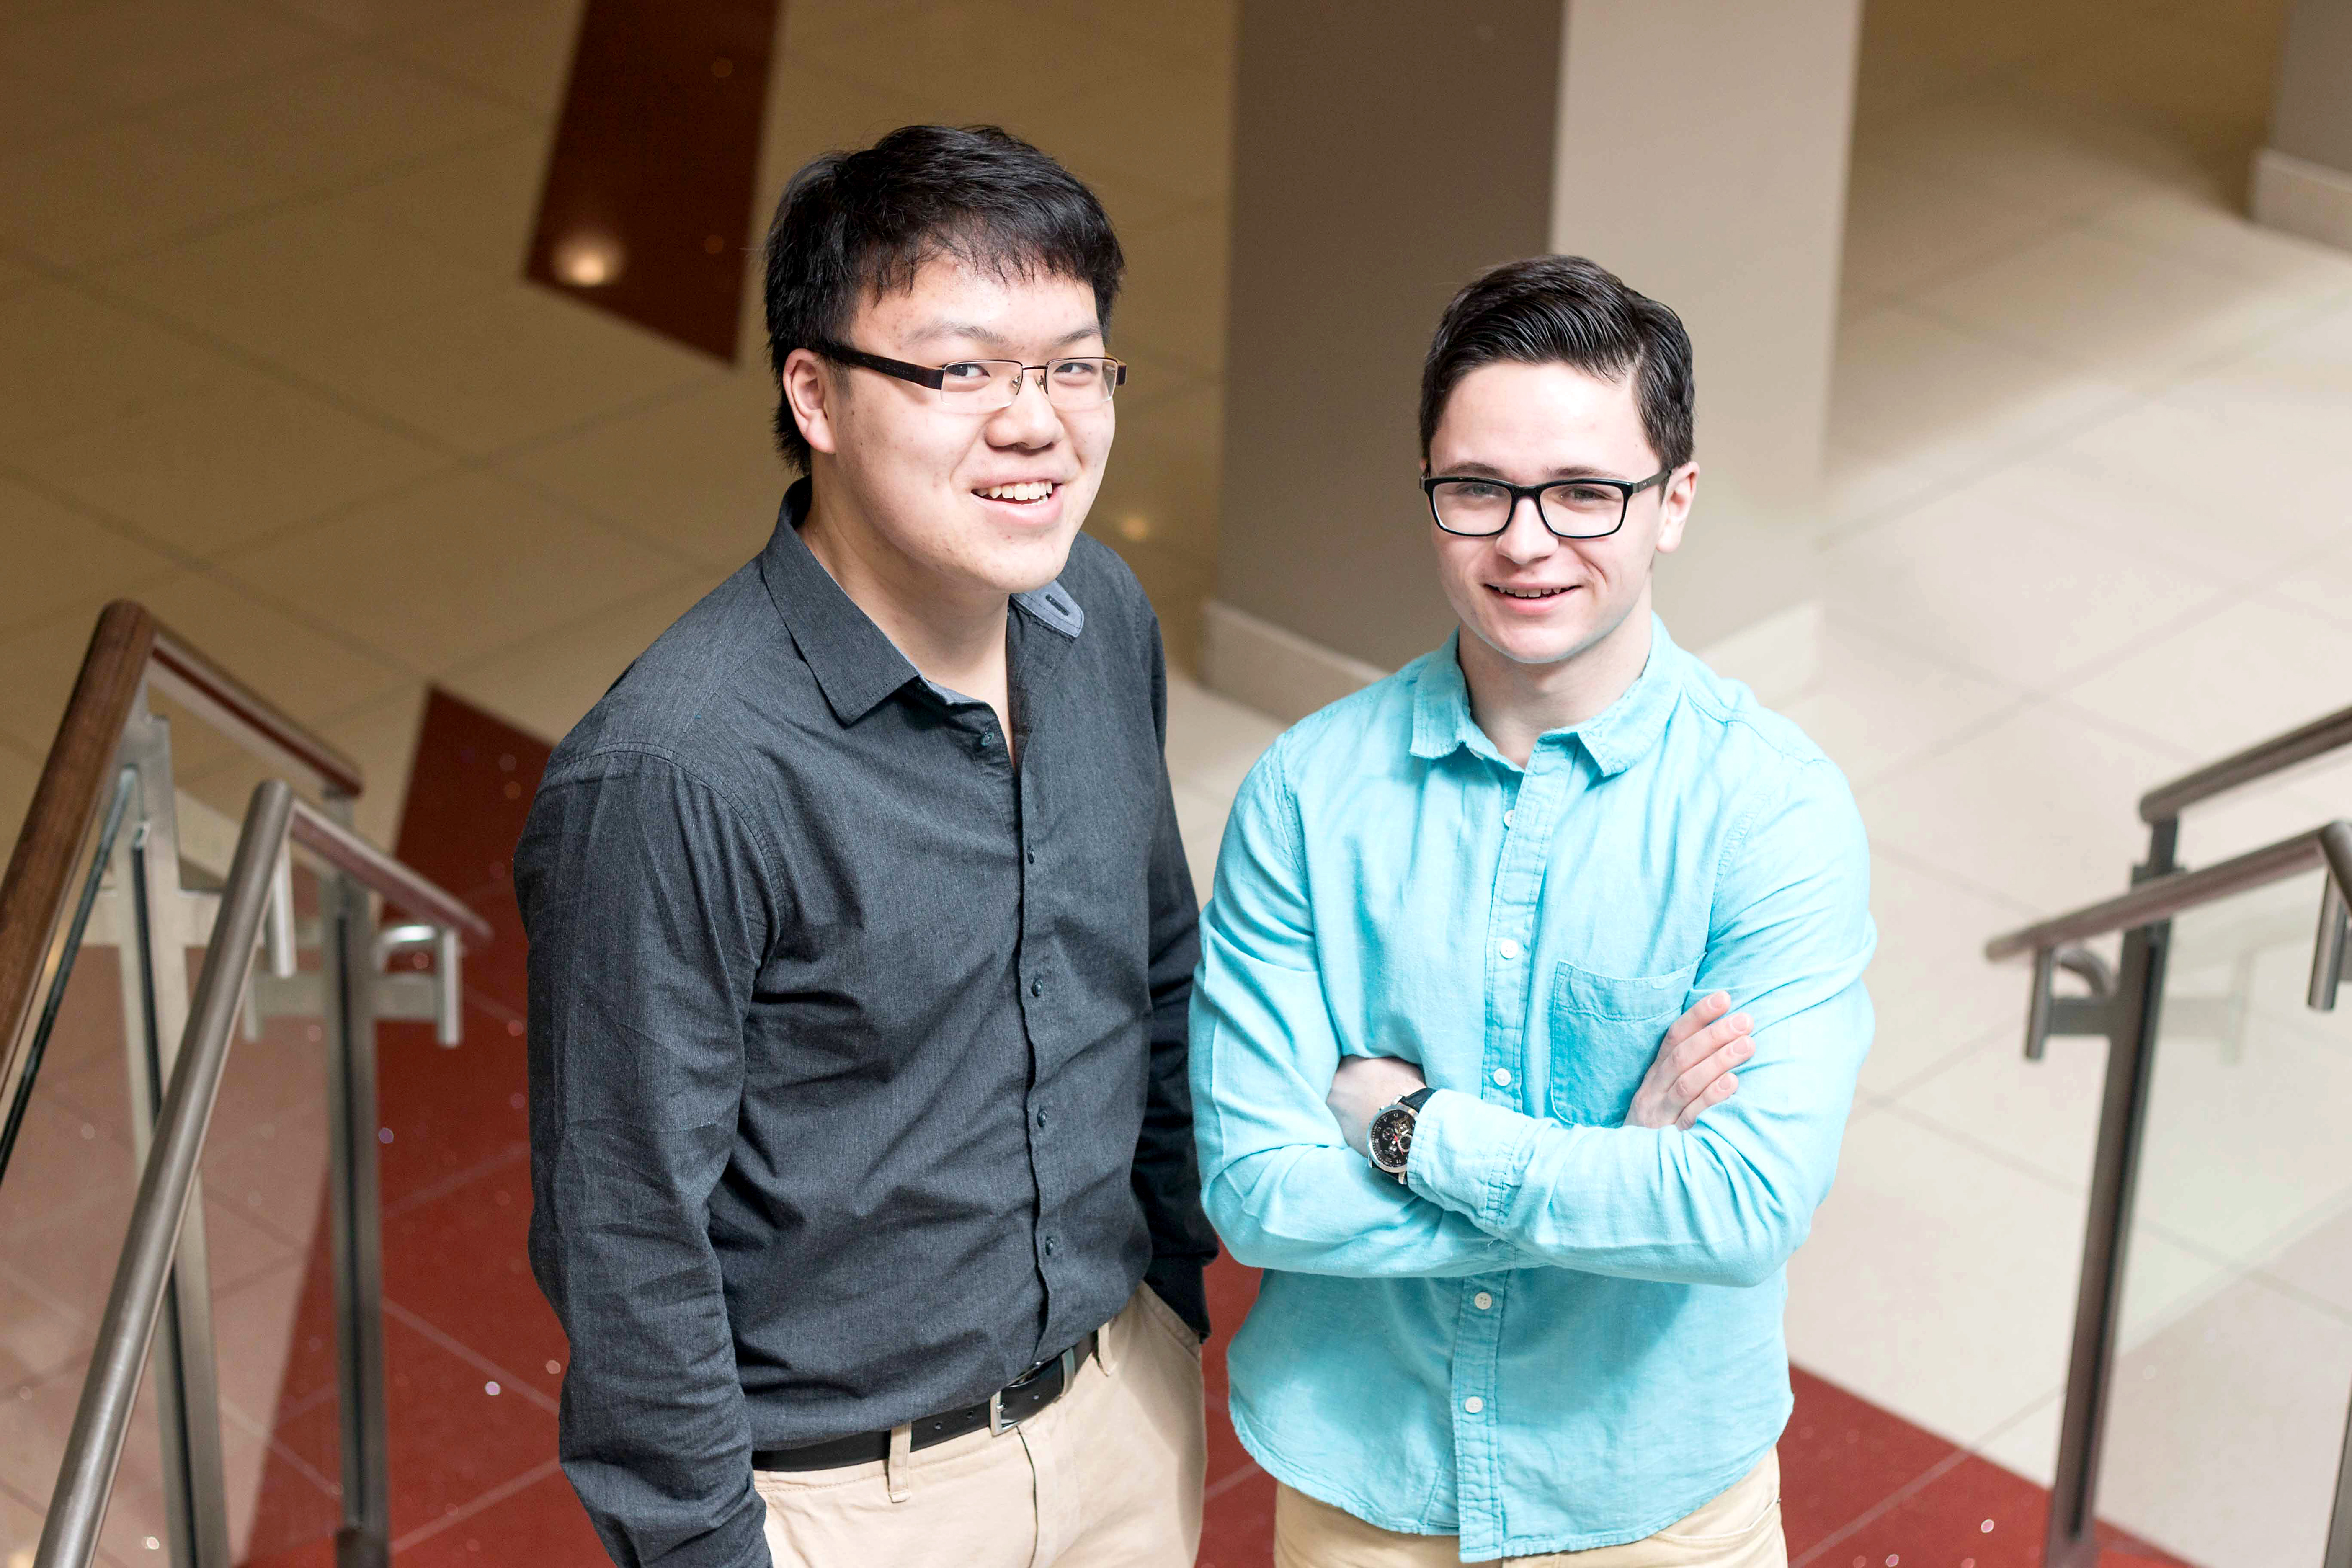 Brandon Chow and Andrew Paladi won Canada's Business Model Competition at Dalhousie University. (Photo by: Jessica Dik)